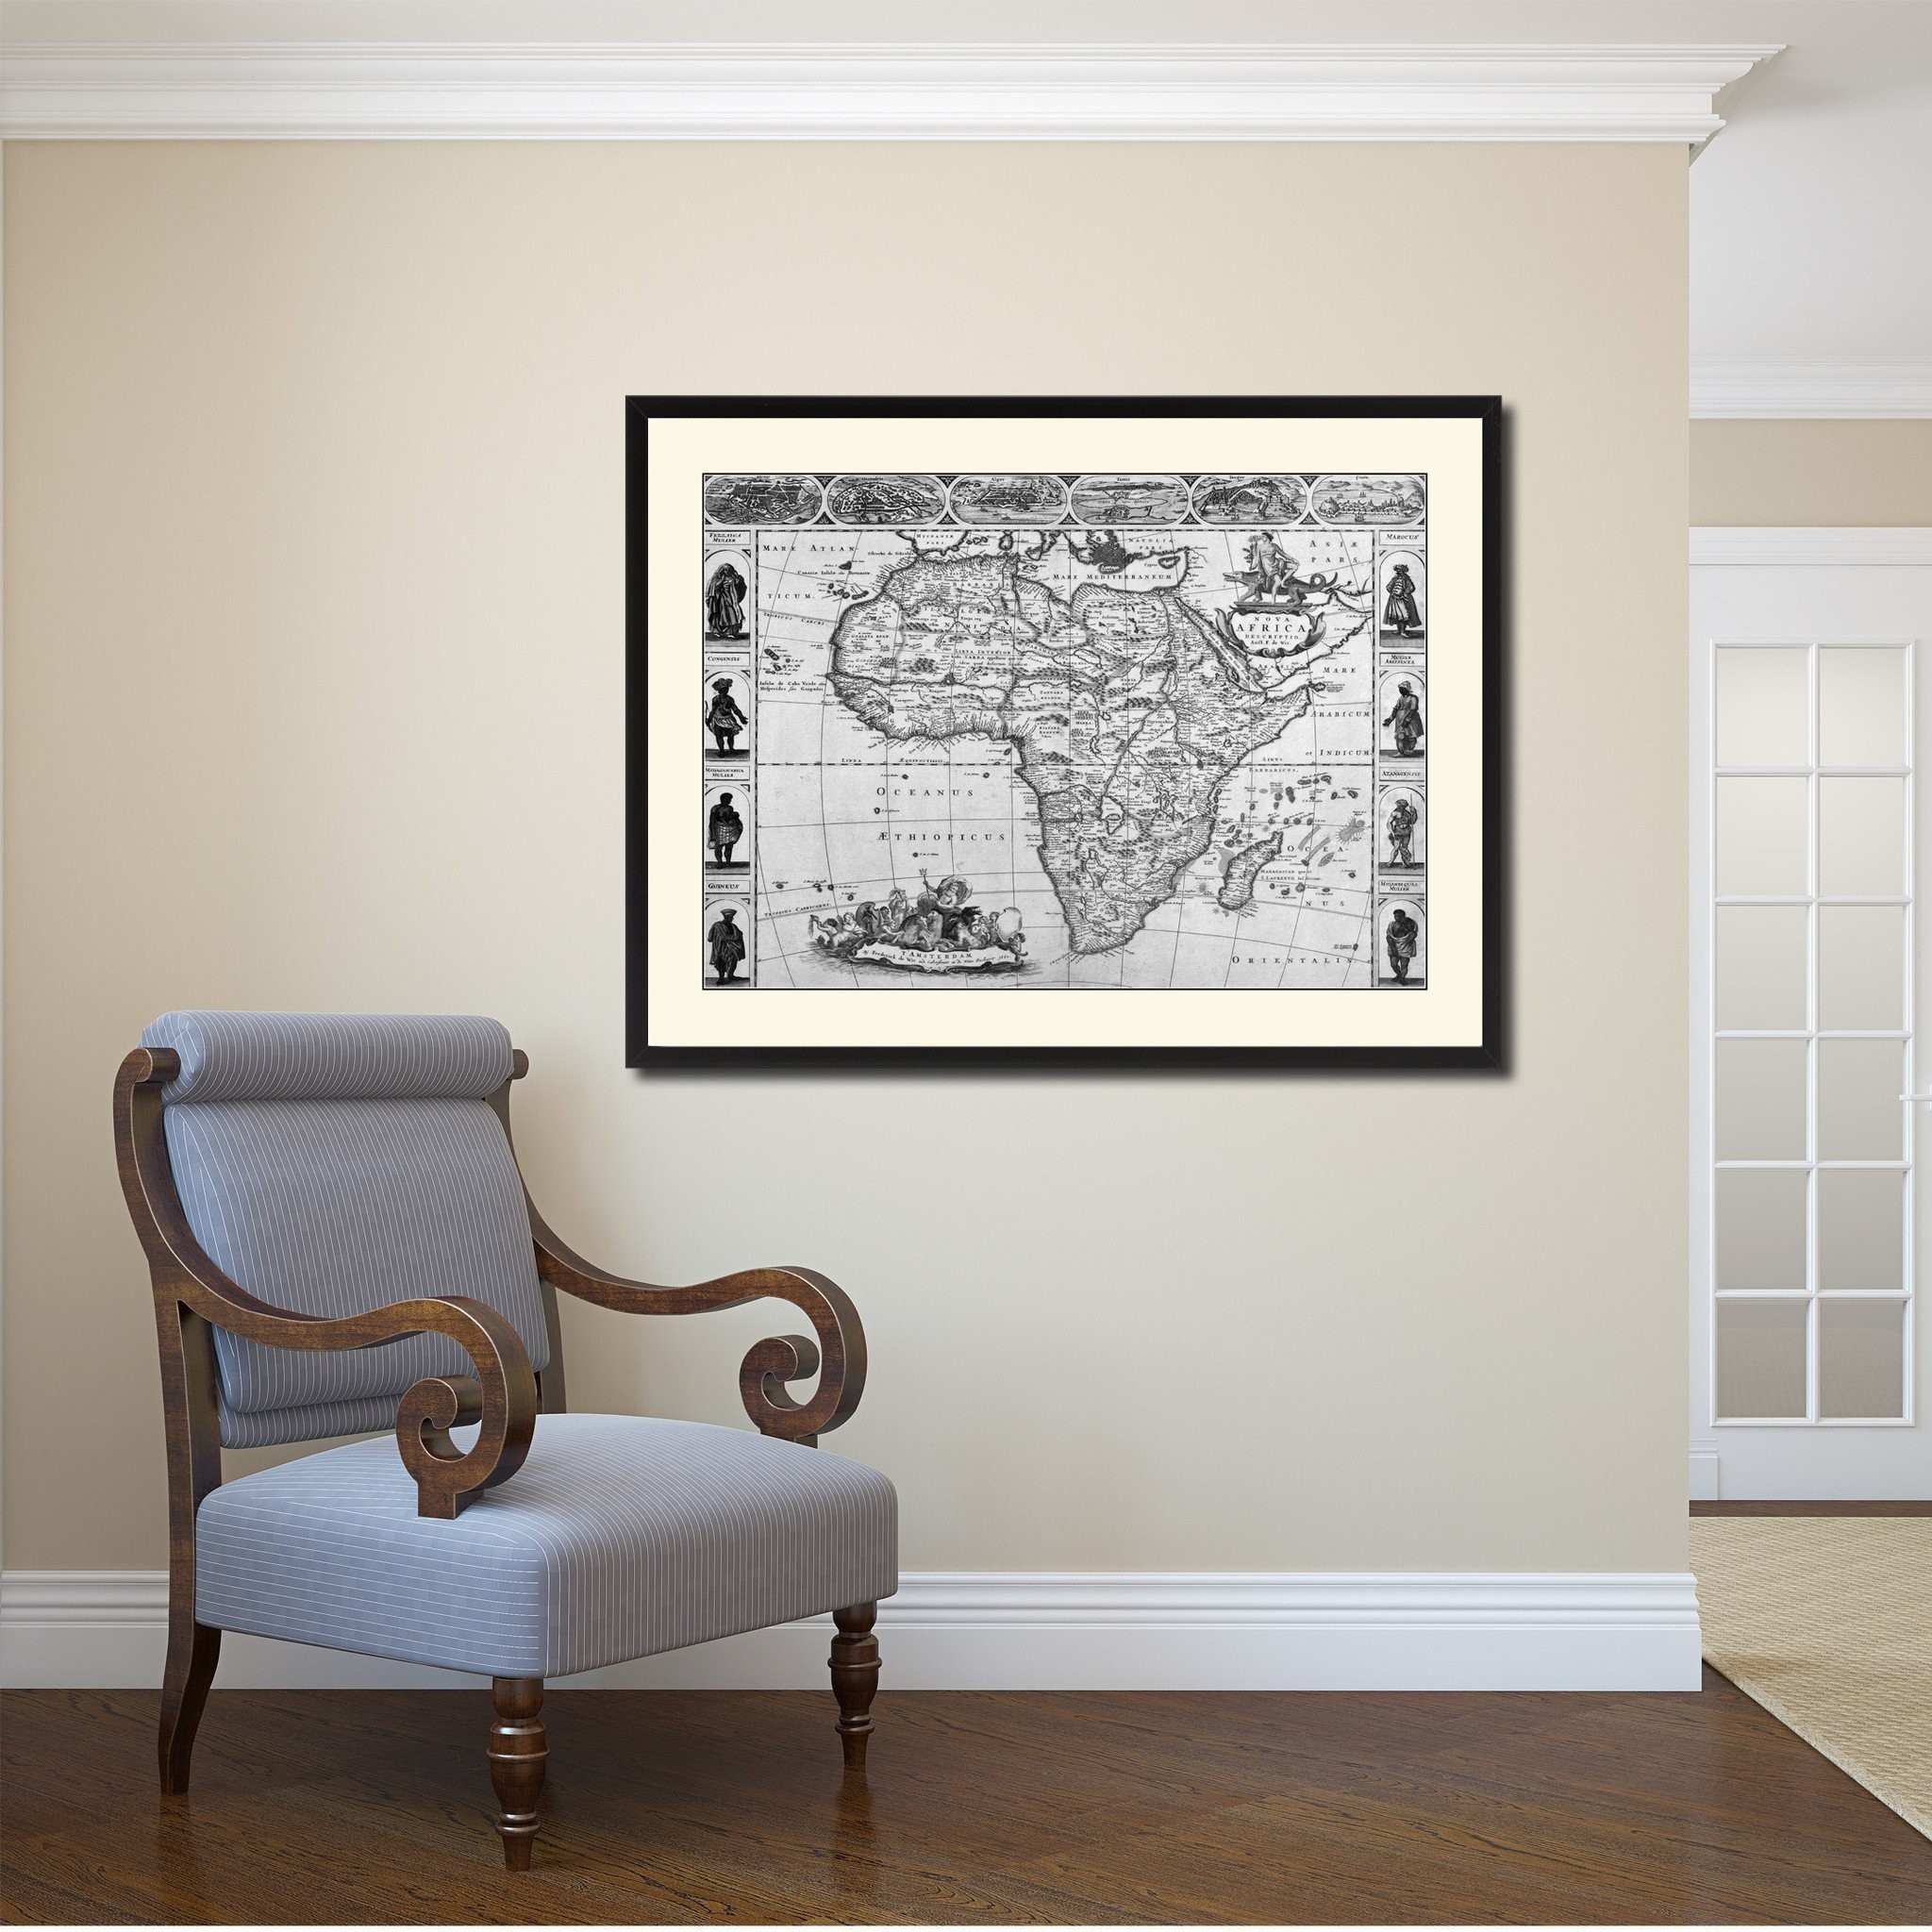 Africa Vintage B&W Map Canvas Print Picture Frame Home Decor Wall Art Gift Ideas